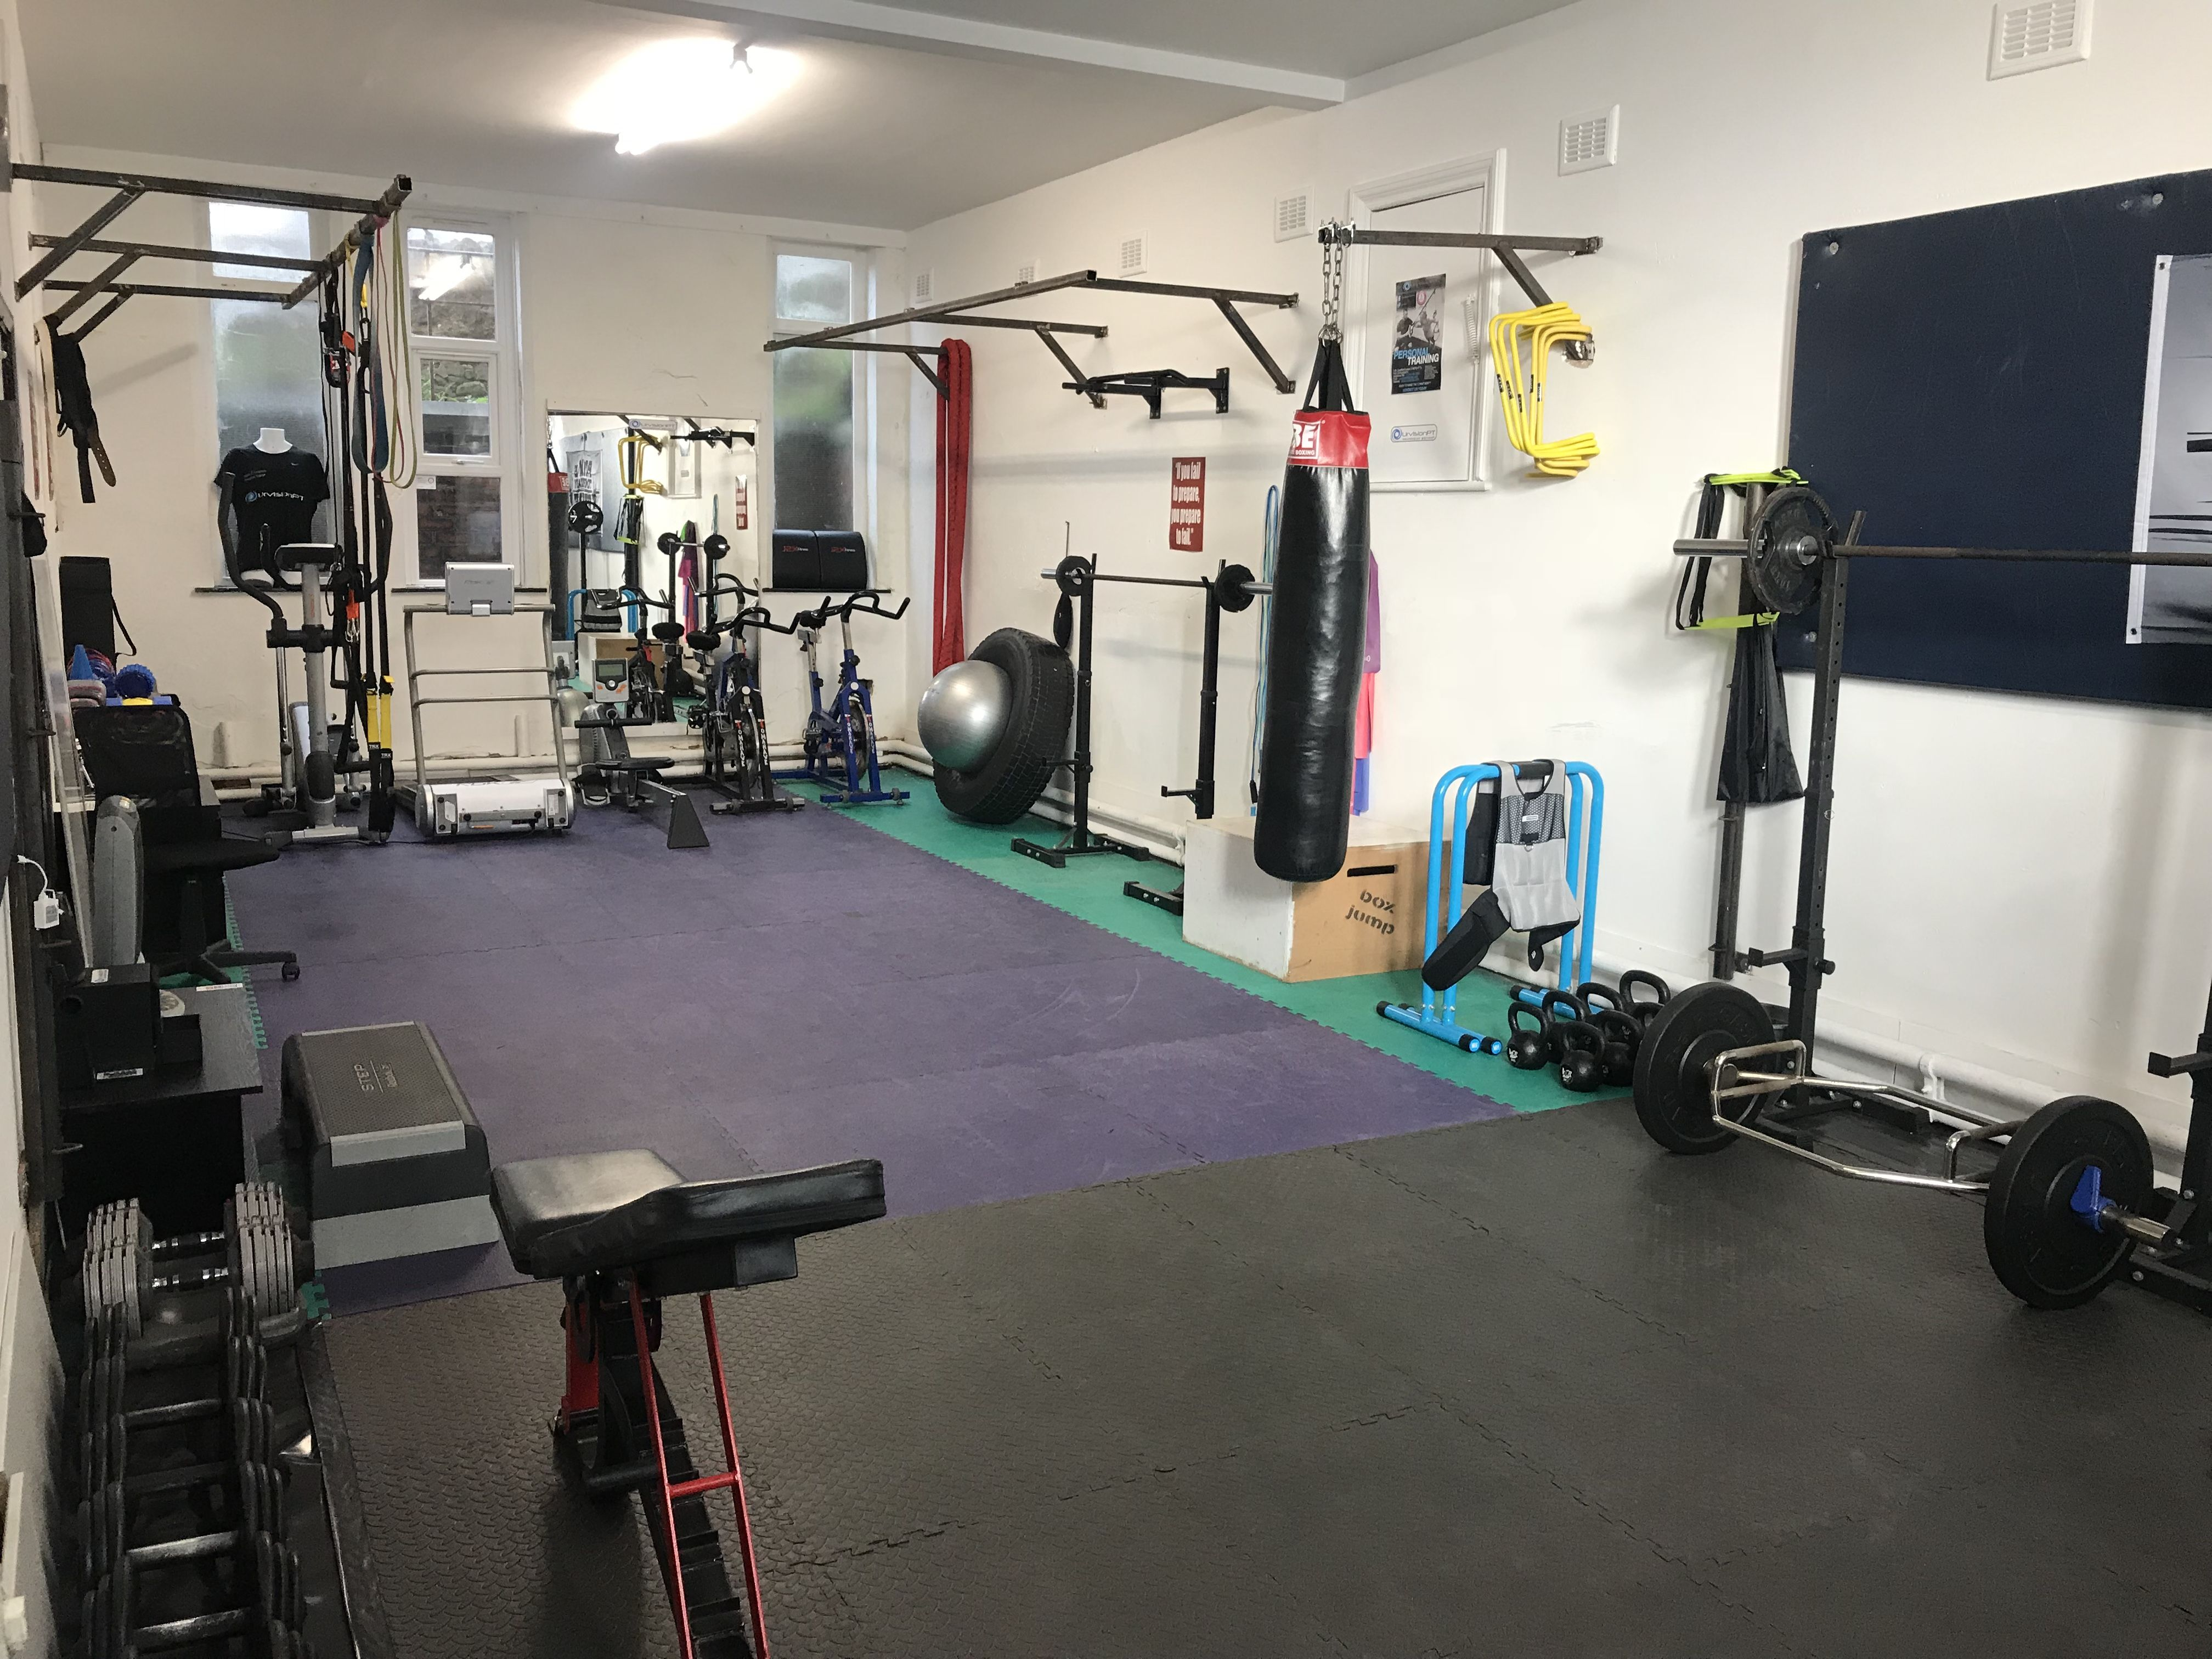 Pt Studio Fitness Pt Gym Weights Functional Space Training Goals Health Fitnes Build My Own House Personal Training Studio Design Dream House Gym